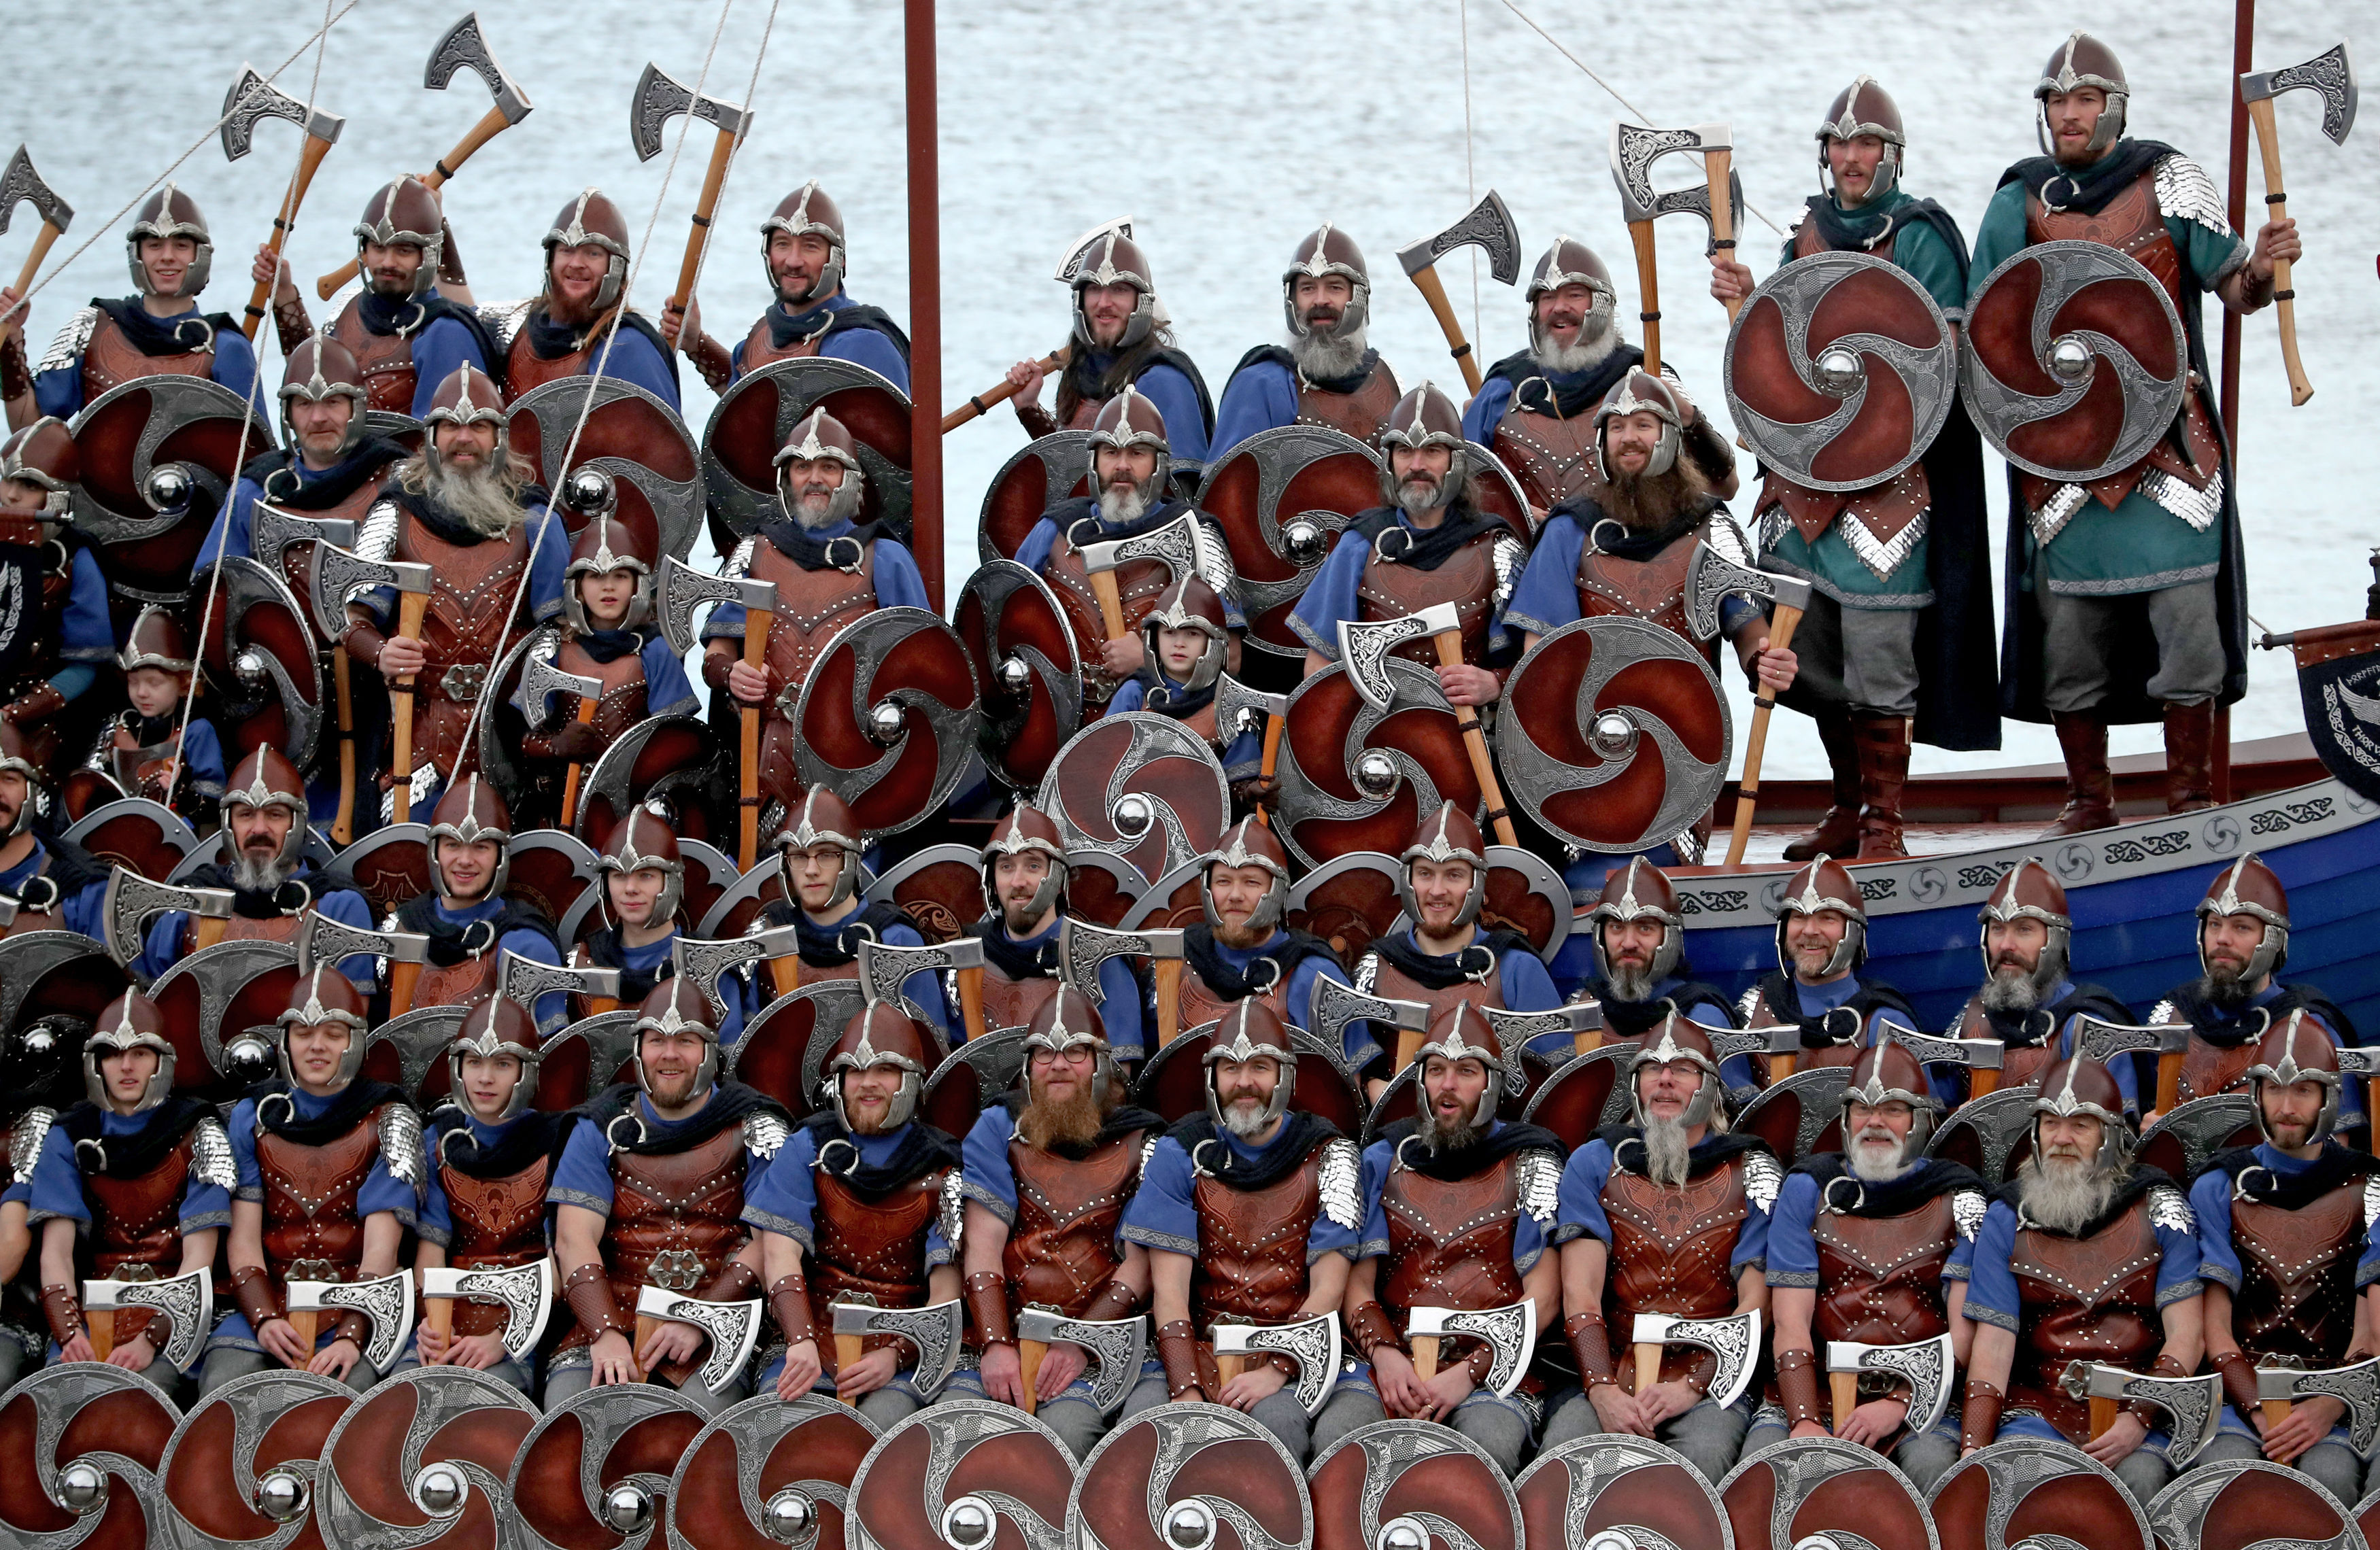 Members of the Jarl Squad dressed in Viking suits on the galley (Jane Barlow/PA)